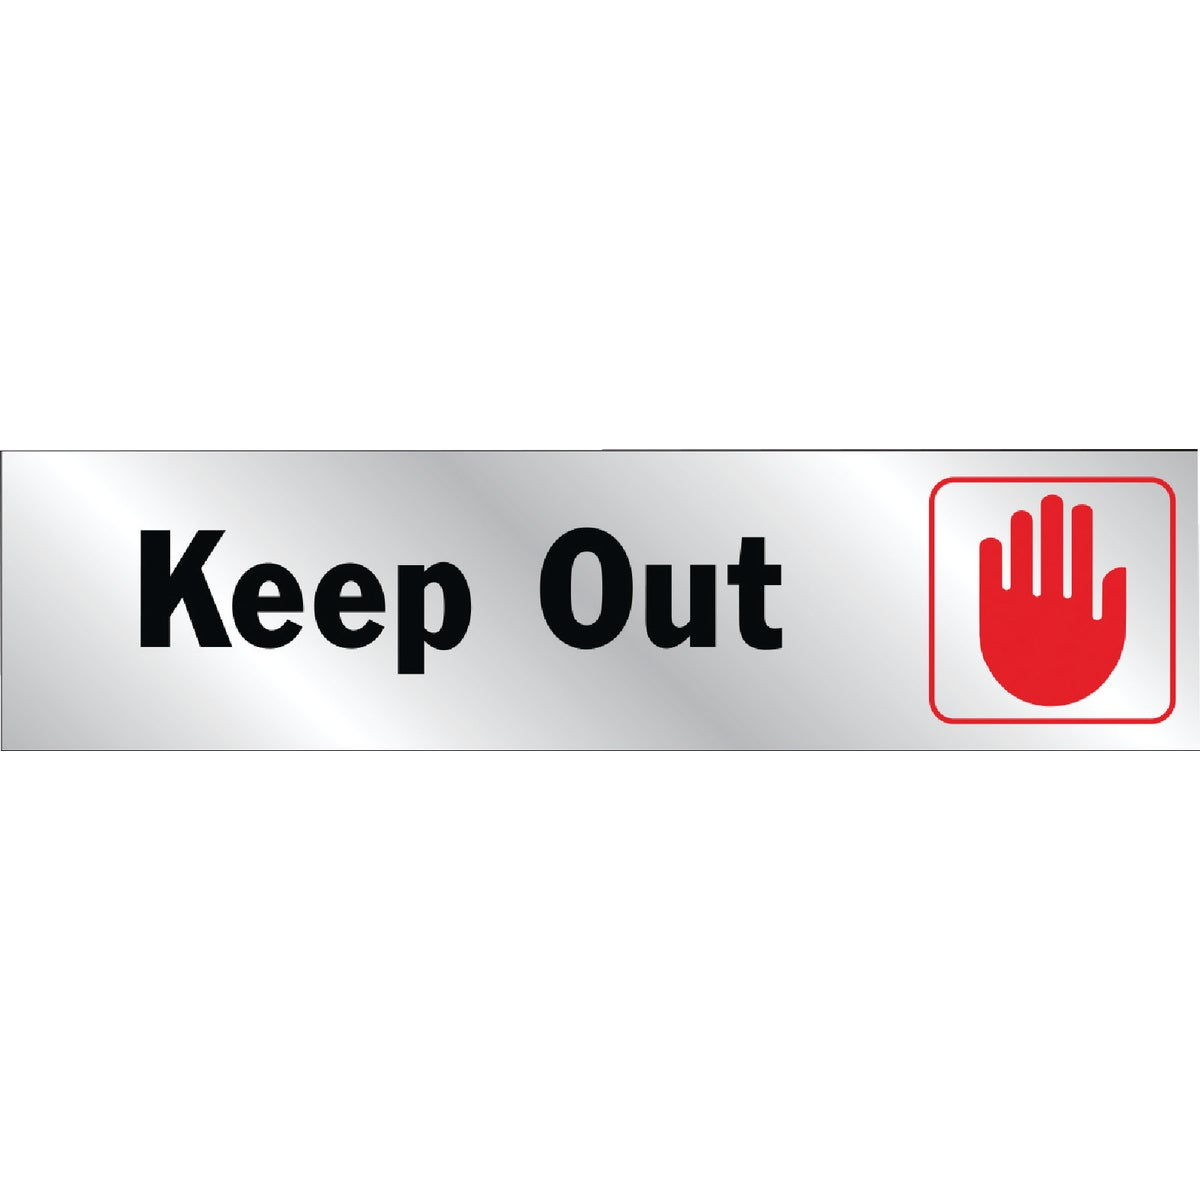 8-1/2X2 KEEP OUT SIGN - 417 by Hy Ko Prods Co